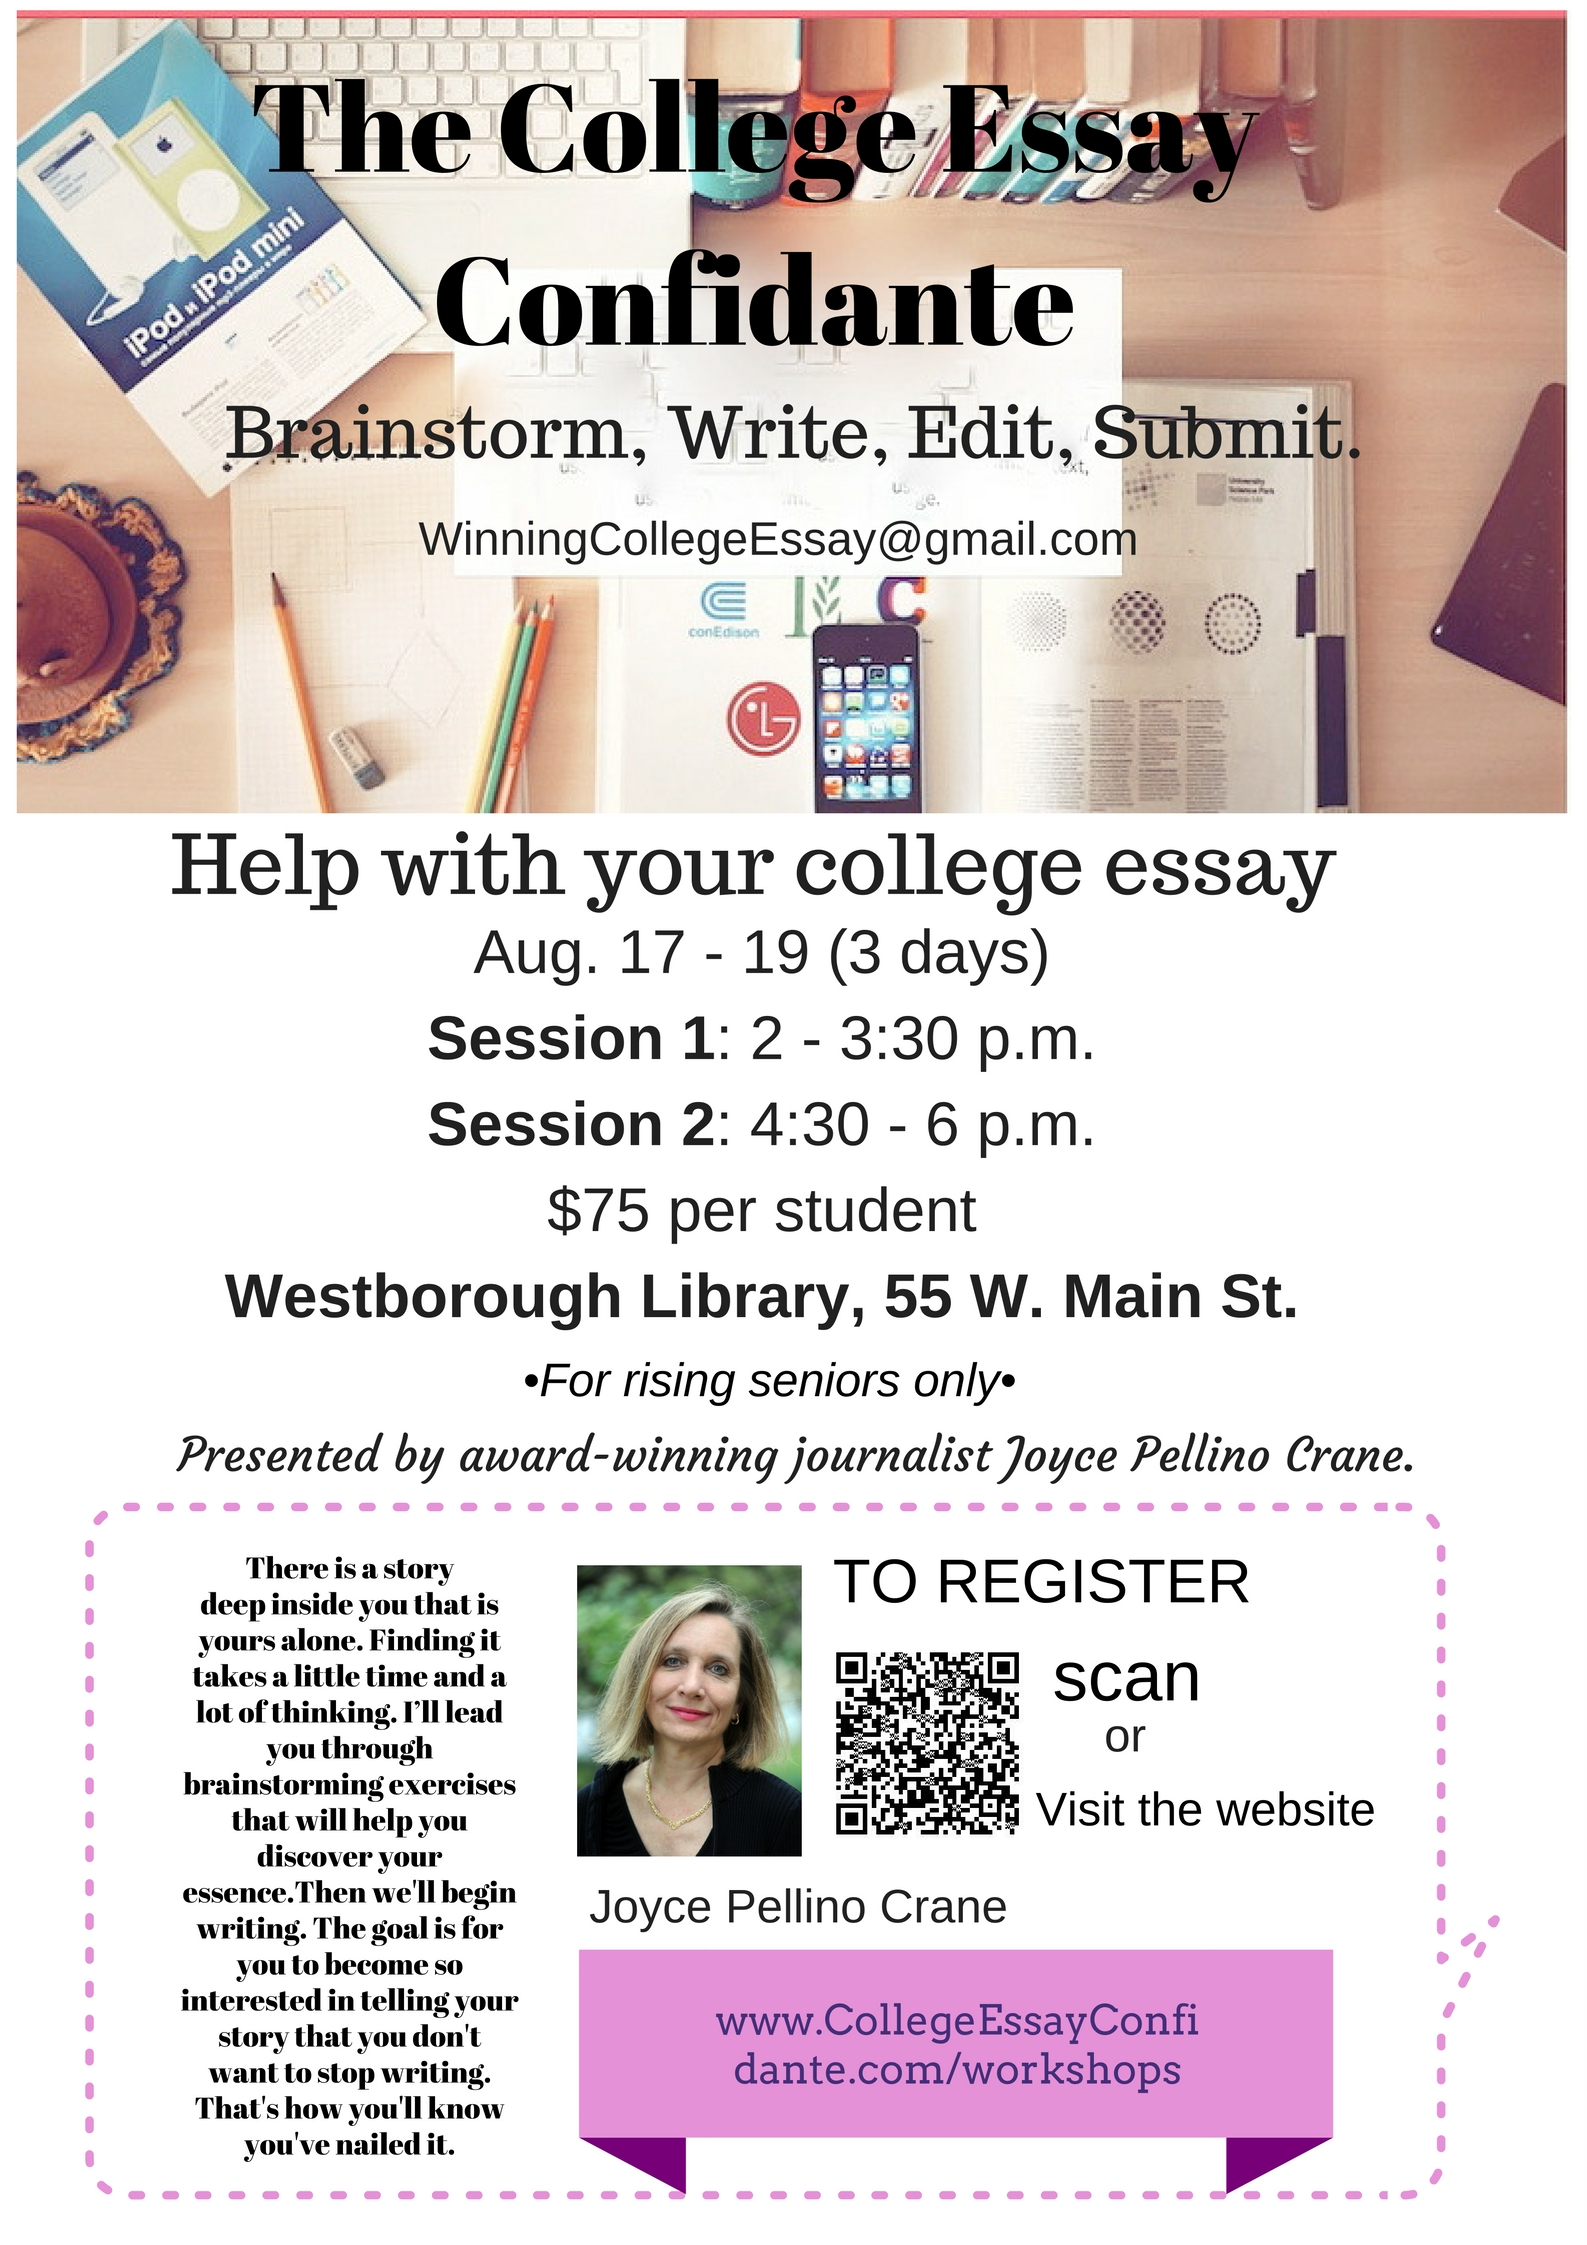 dante essay the college essay confidante page help your college  the college essay confidante page help your college poster westborough library 75